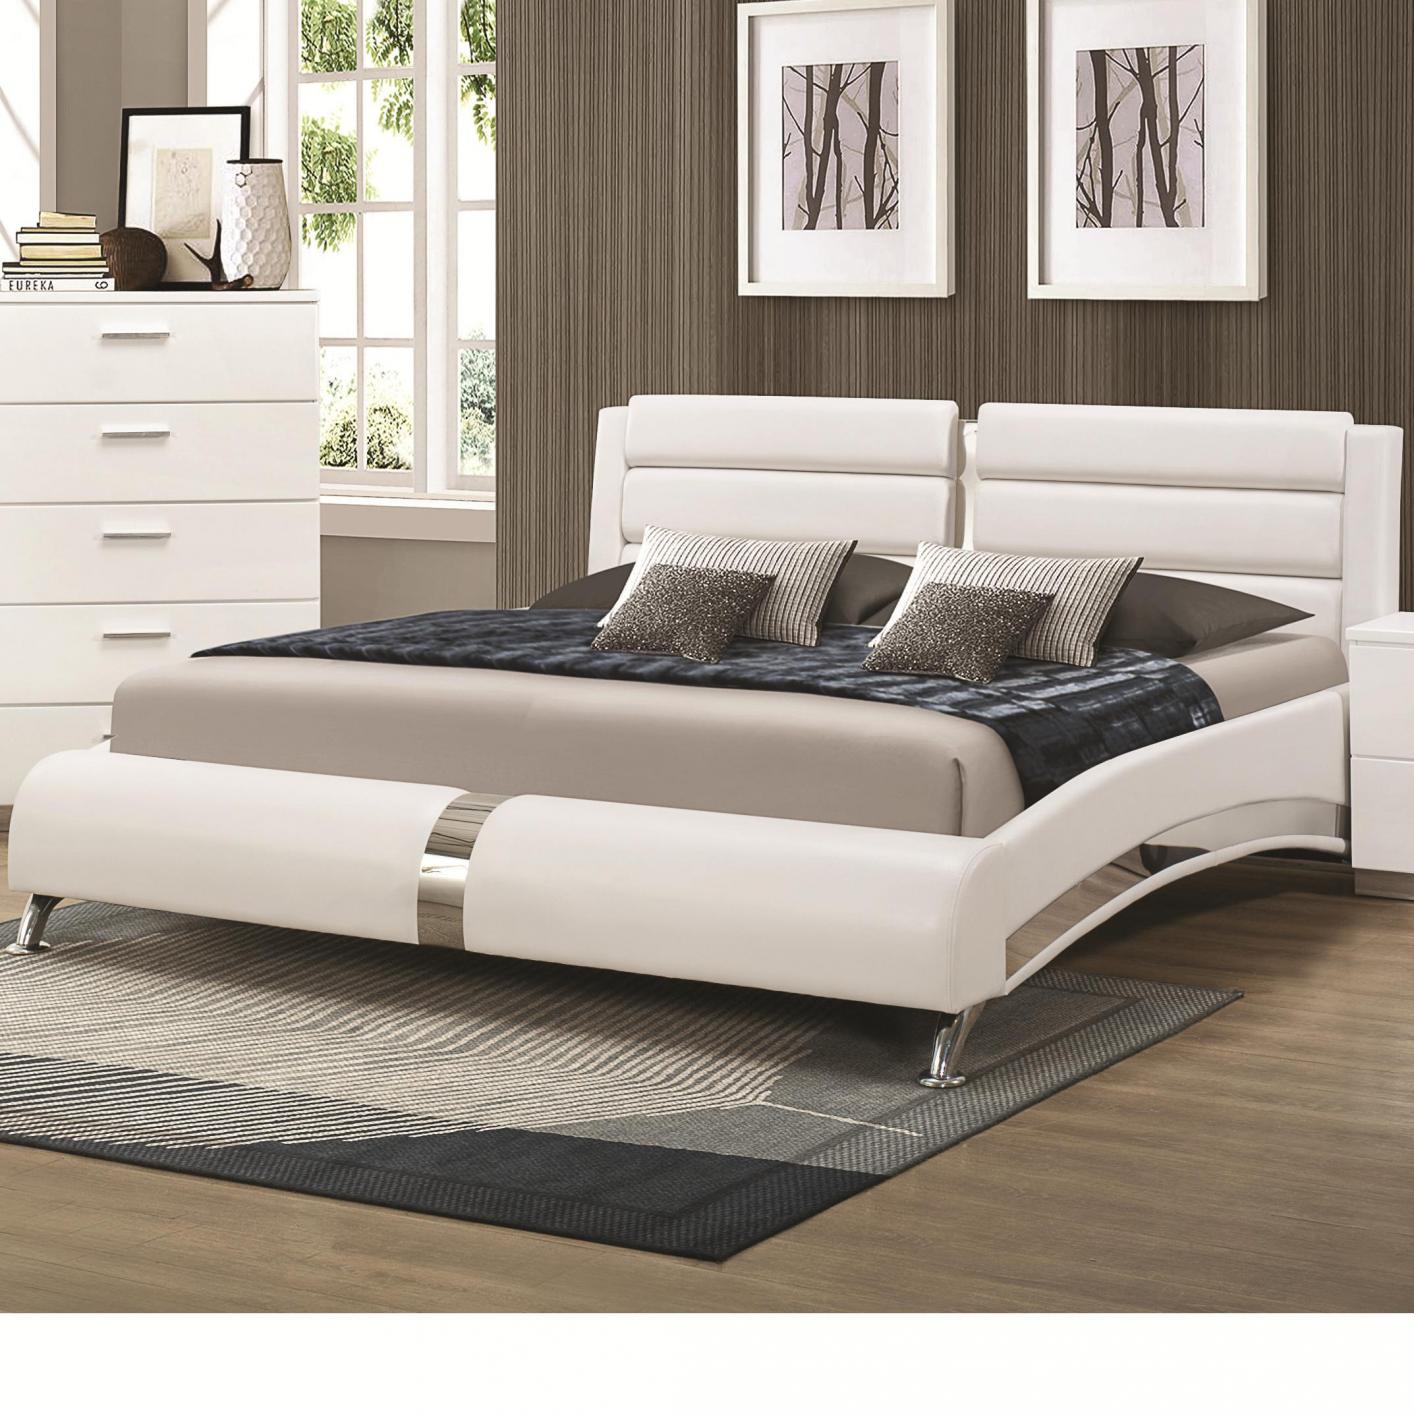 White Wood California King Size Bed